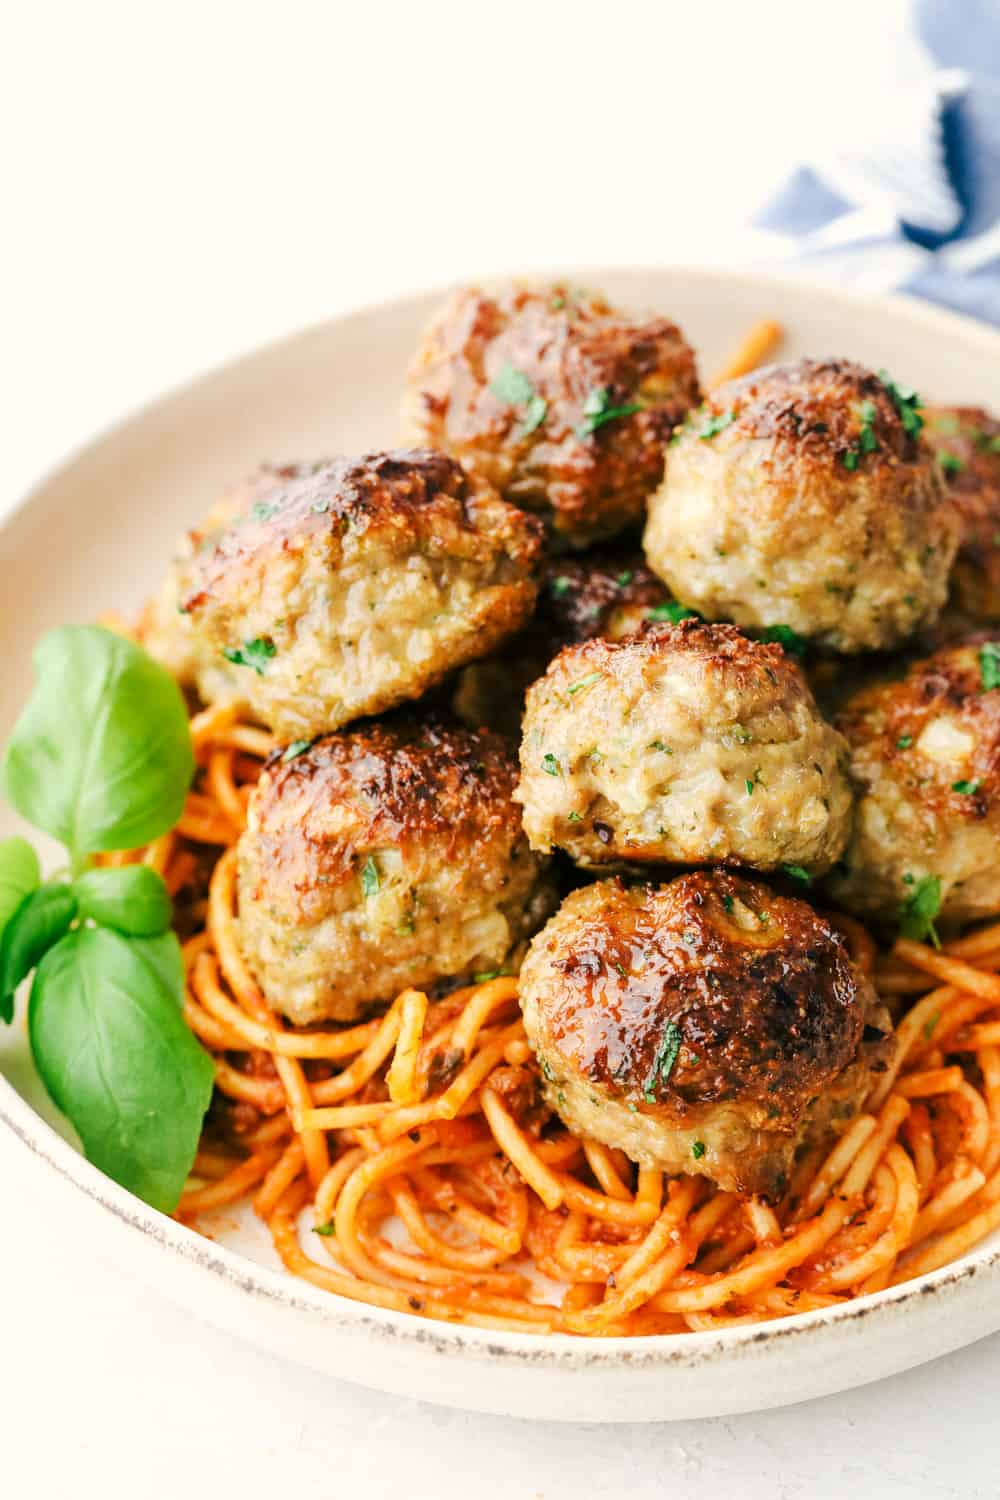 Perfectly baked turkey meatballs with spaghetti noodles and sauce.